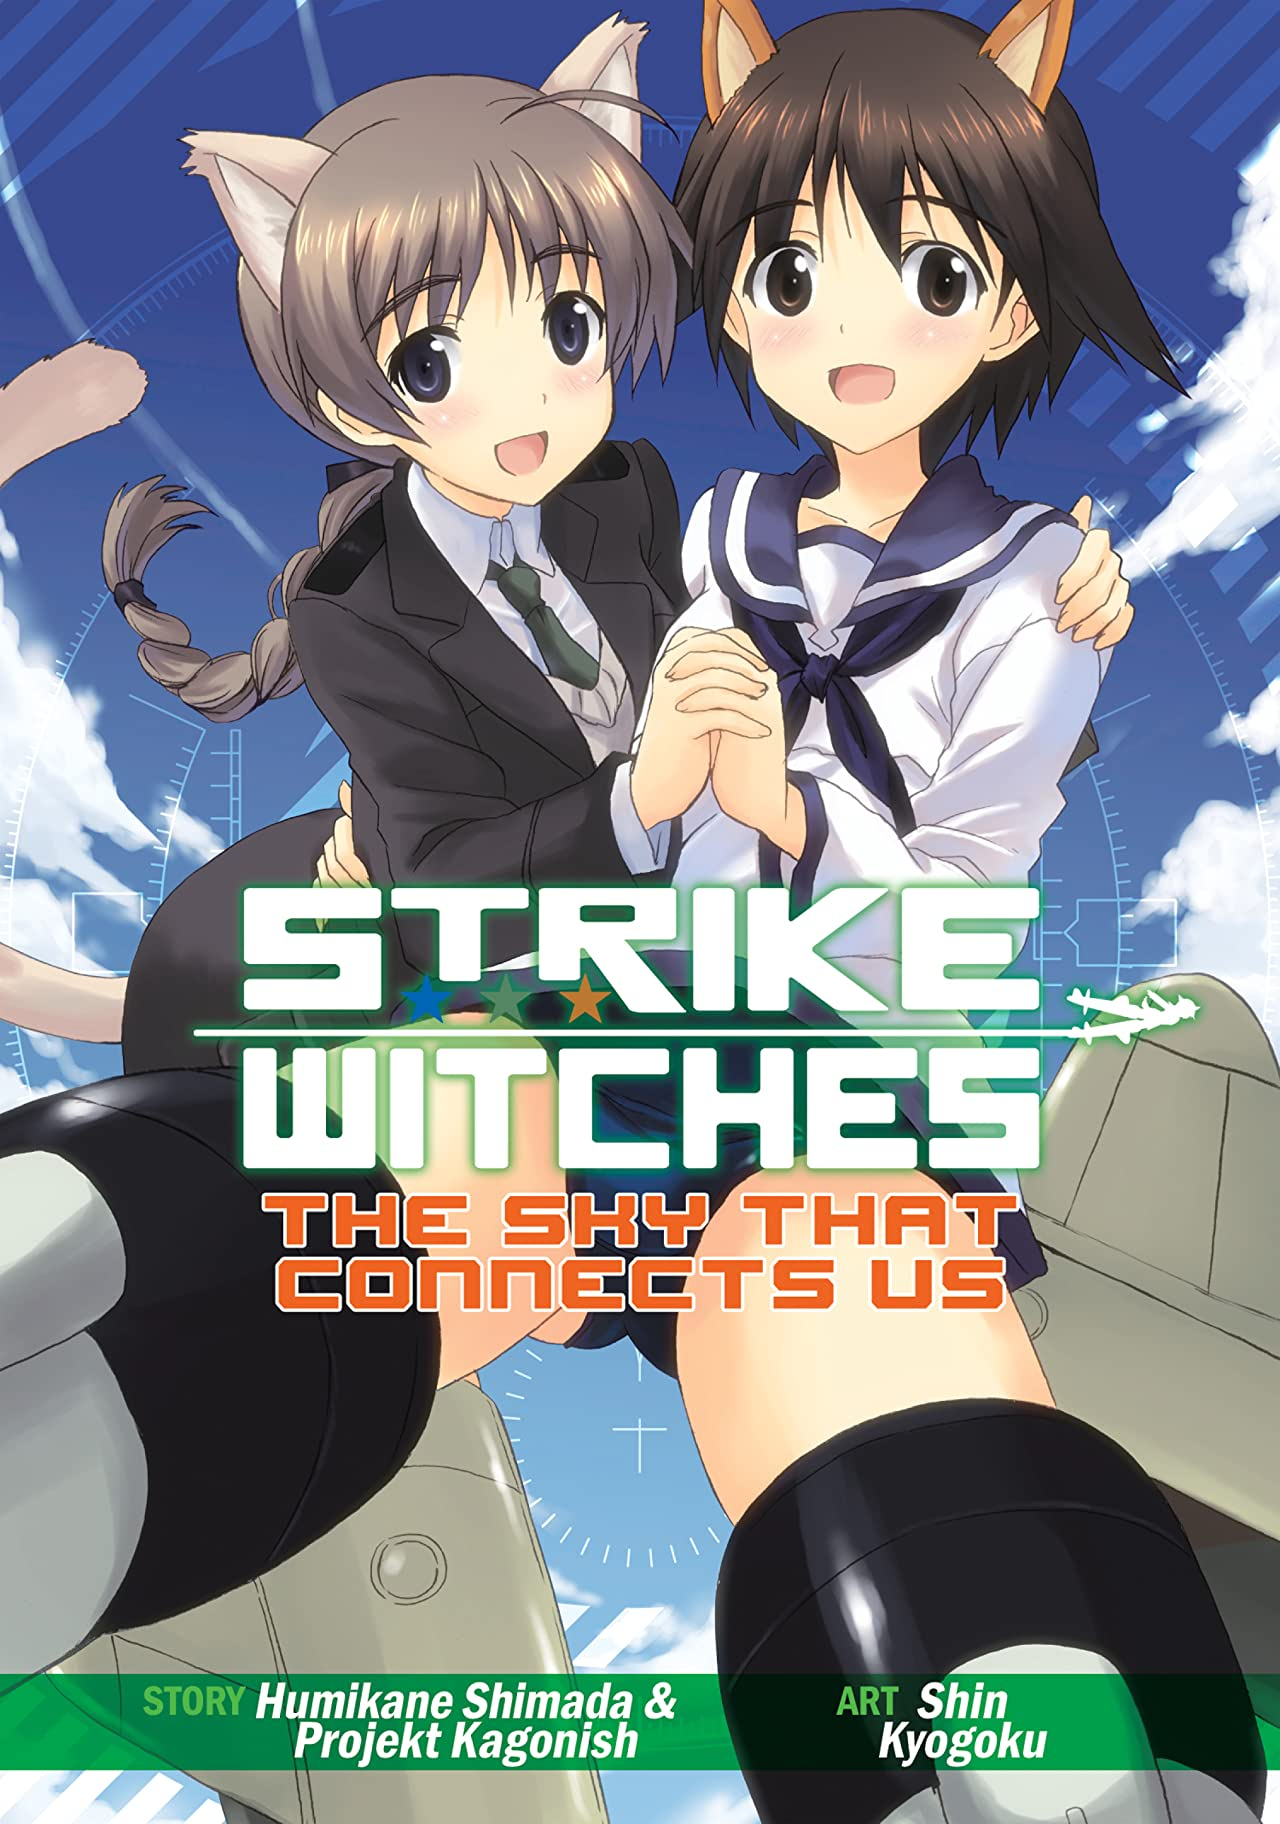 Strike Witches: The Sky That Connects Us Vol. 1